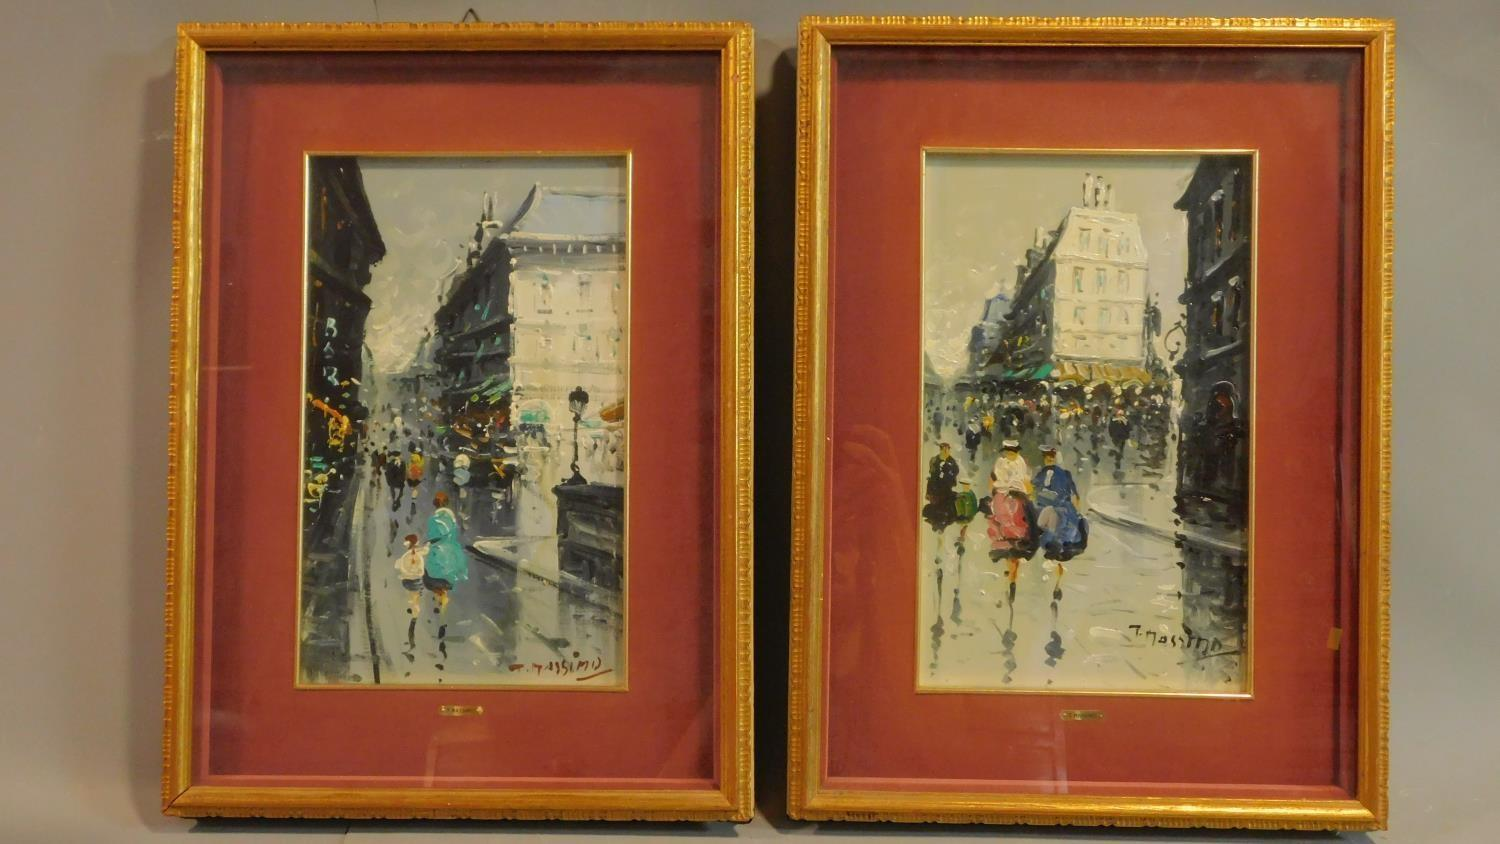 A pair of framed and glazed oils on board, continental street scenes in the rain, signed T